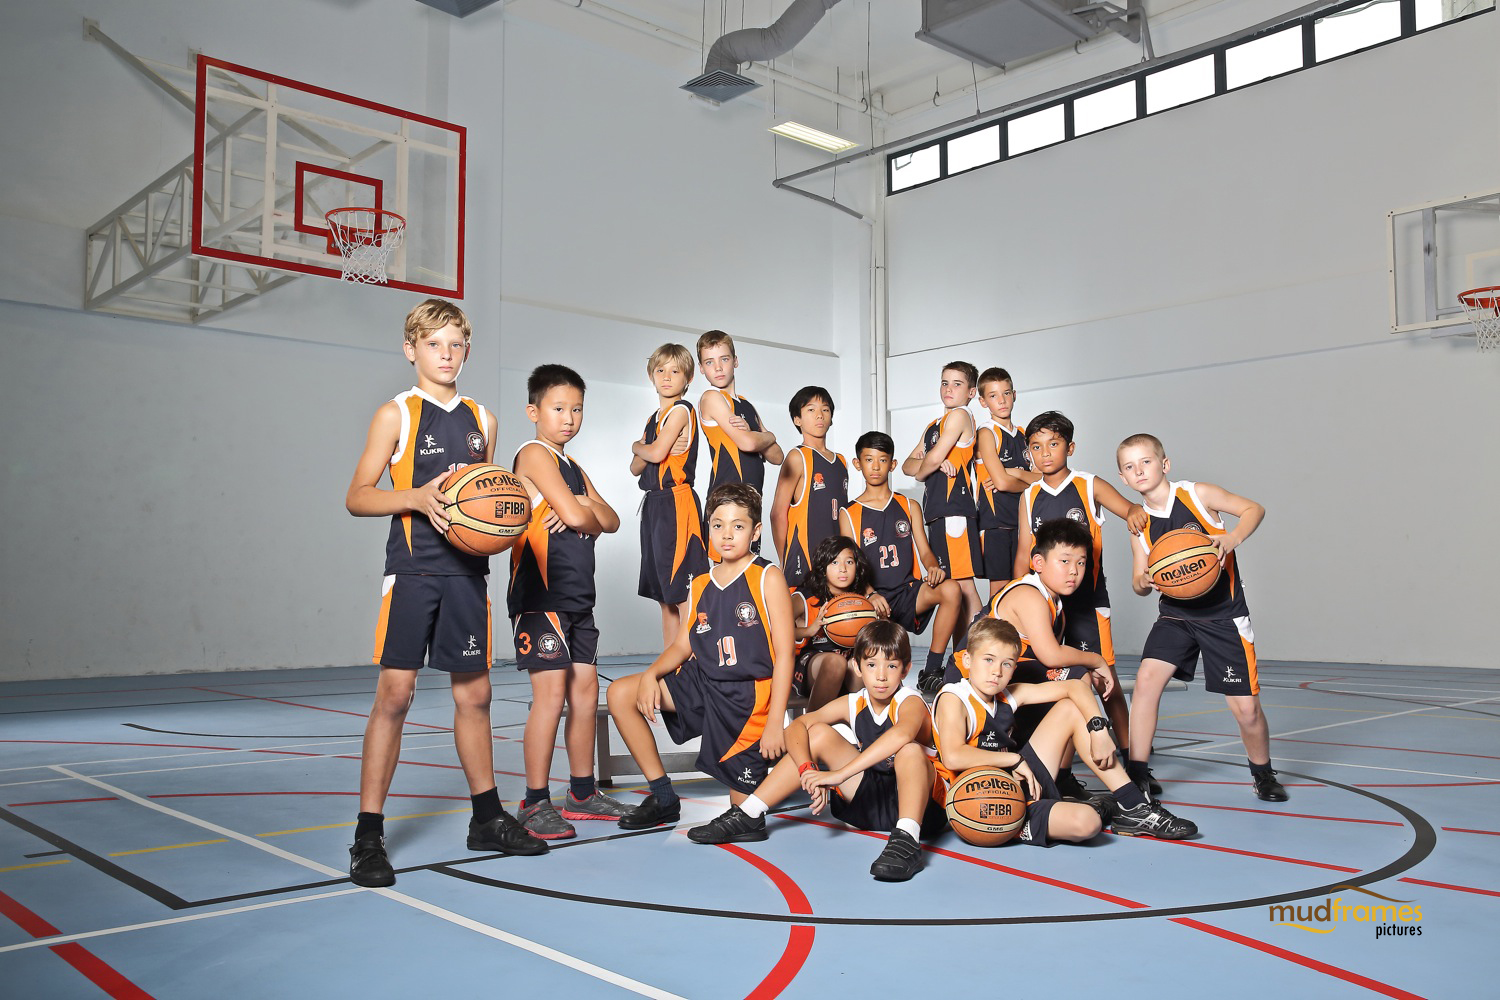 The British International School Under 11 Boys Basketball Team